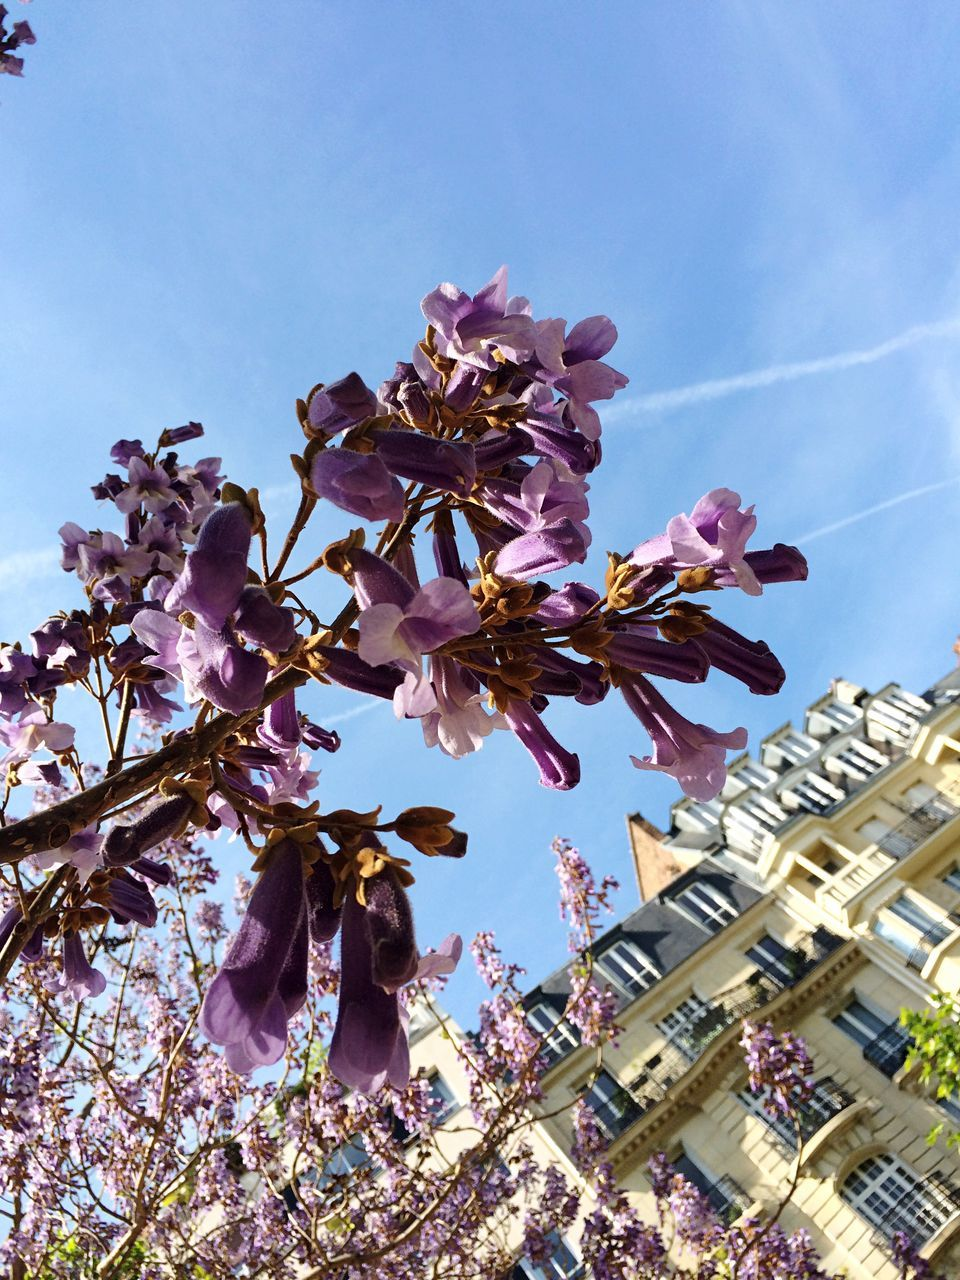 flower, fragility, blossom, low angle view, tree, springtime, growth, beauty in nature, magnolia, petal, branch, freshness, nature, day, botany, pink color, no people, sky, outdoors, flower head, stamen, building exterior, close-up, blooming, clear sky, architecture